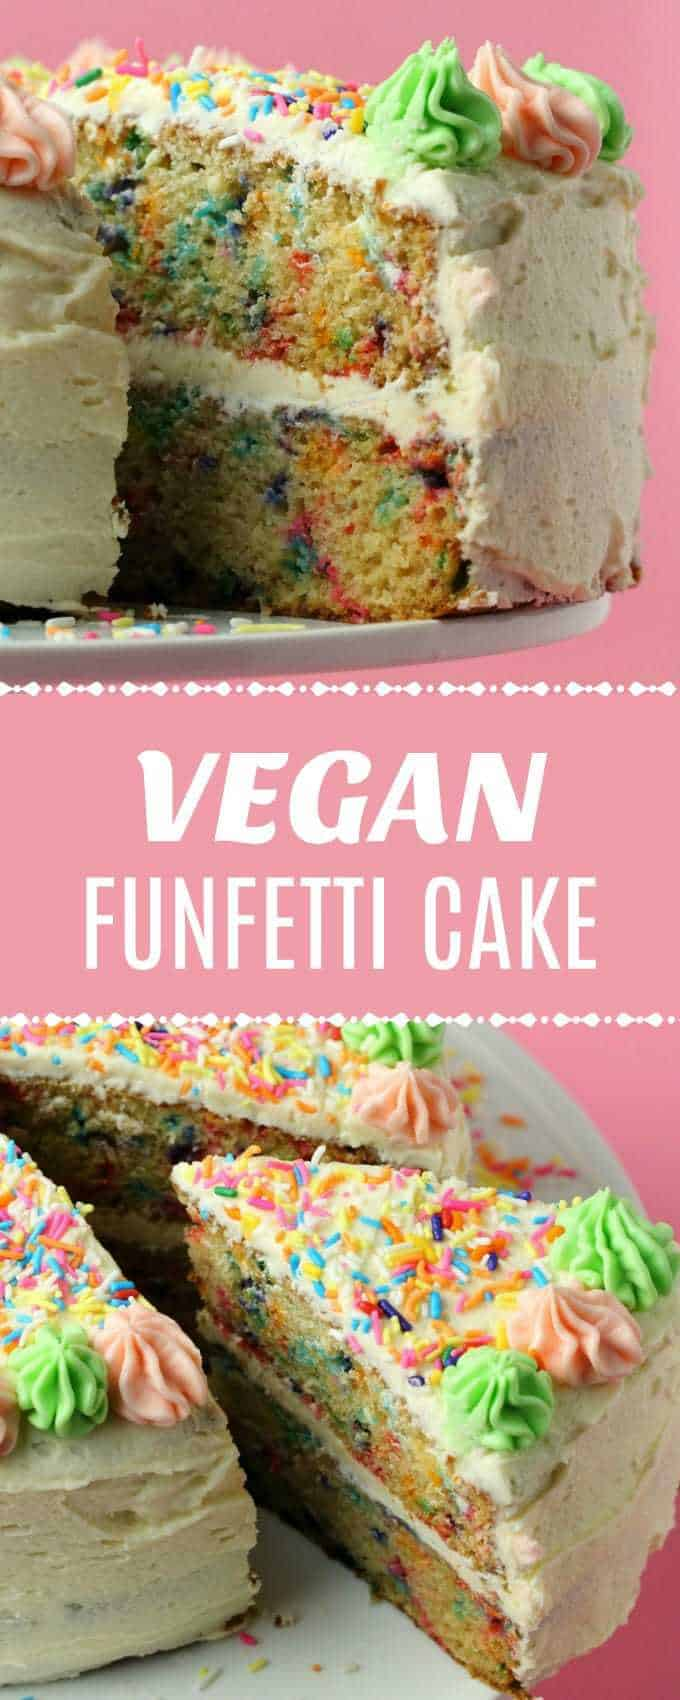 Colorful and festive vegan funfetti cake! This gorgeous, light and fluffy, moist and vanilla flavored cake with vanilla frosting is perfect for celebrations!| lovingitvegan.com